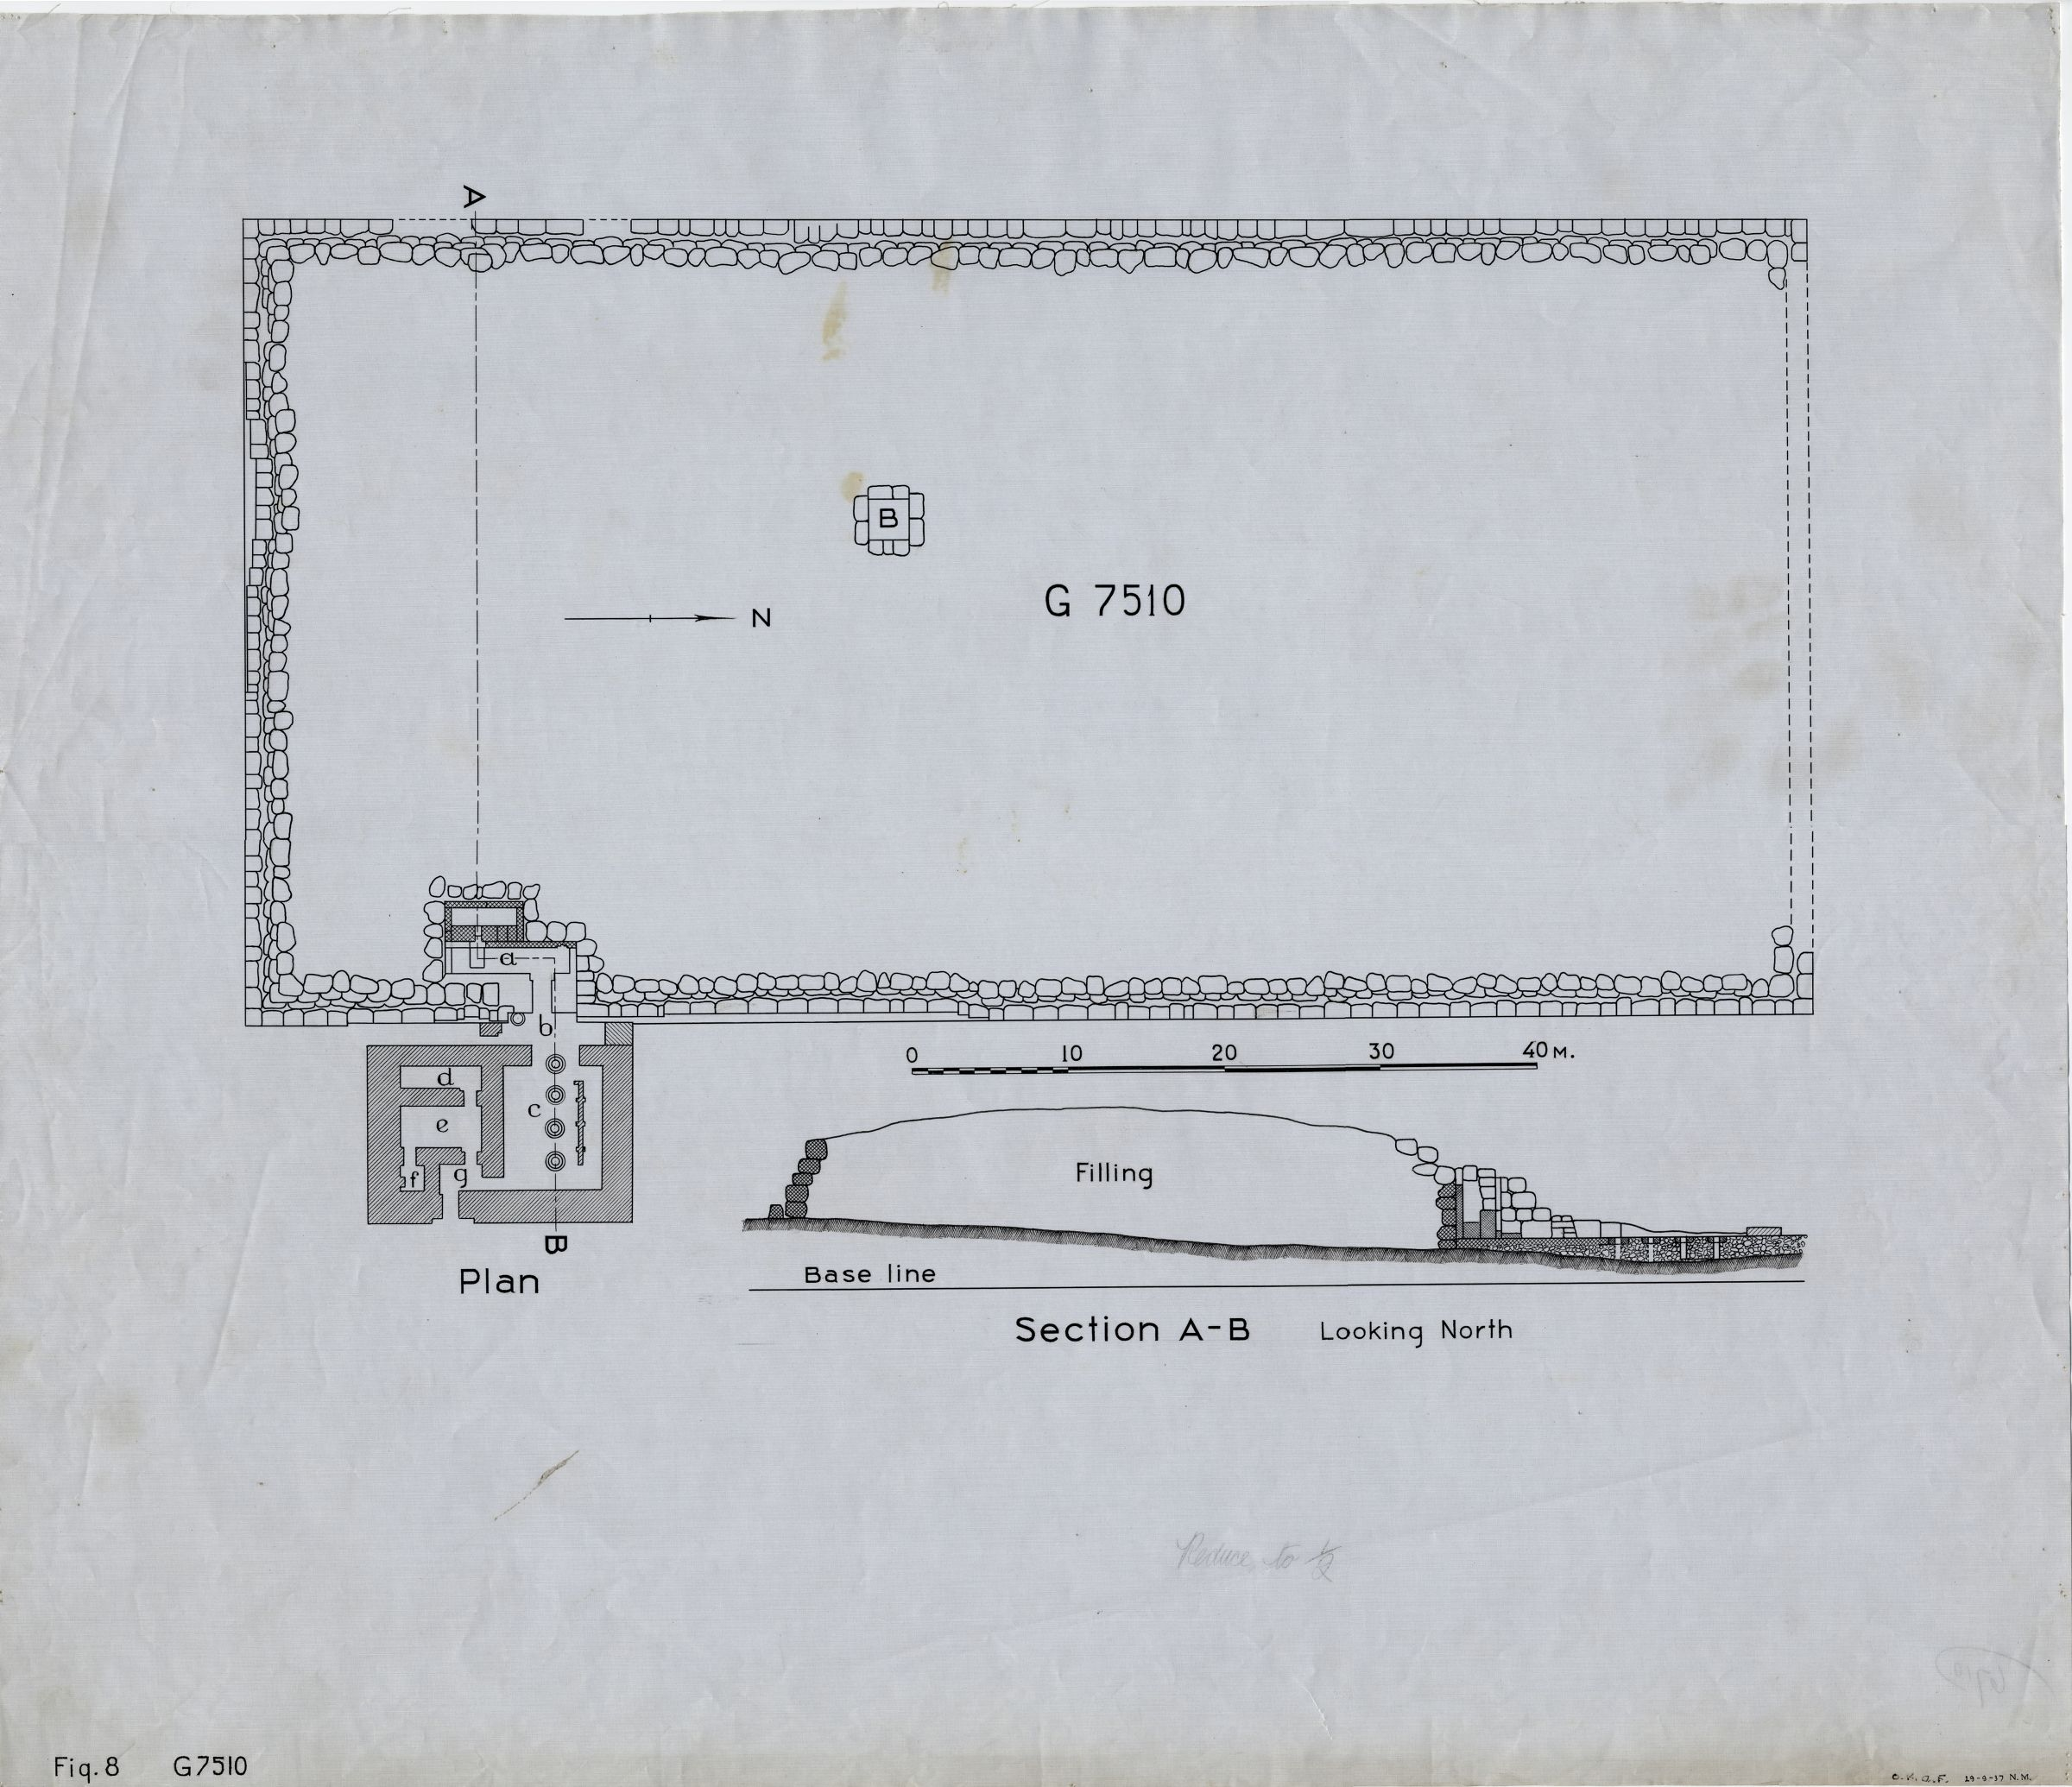 Maps and plans: G 7510, Plan and section